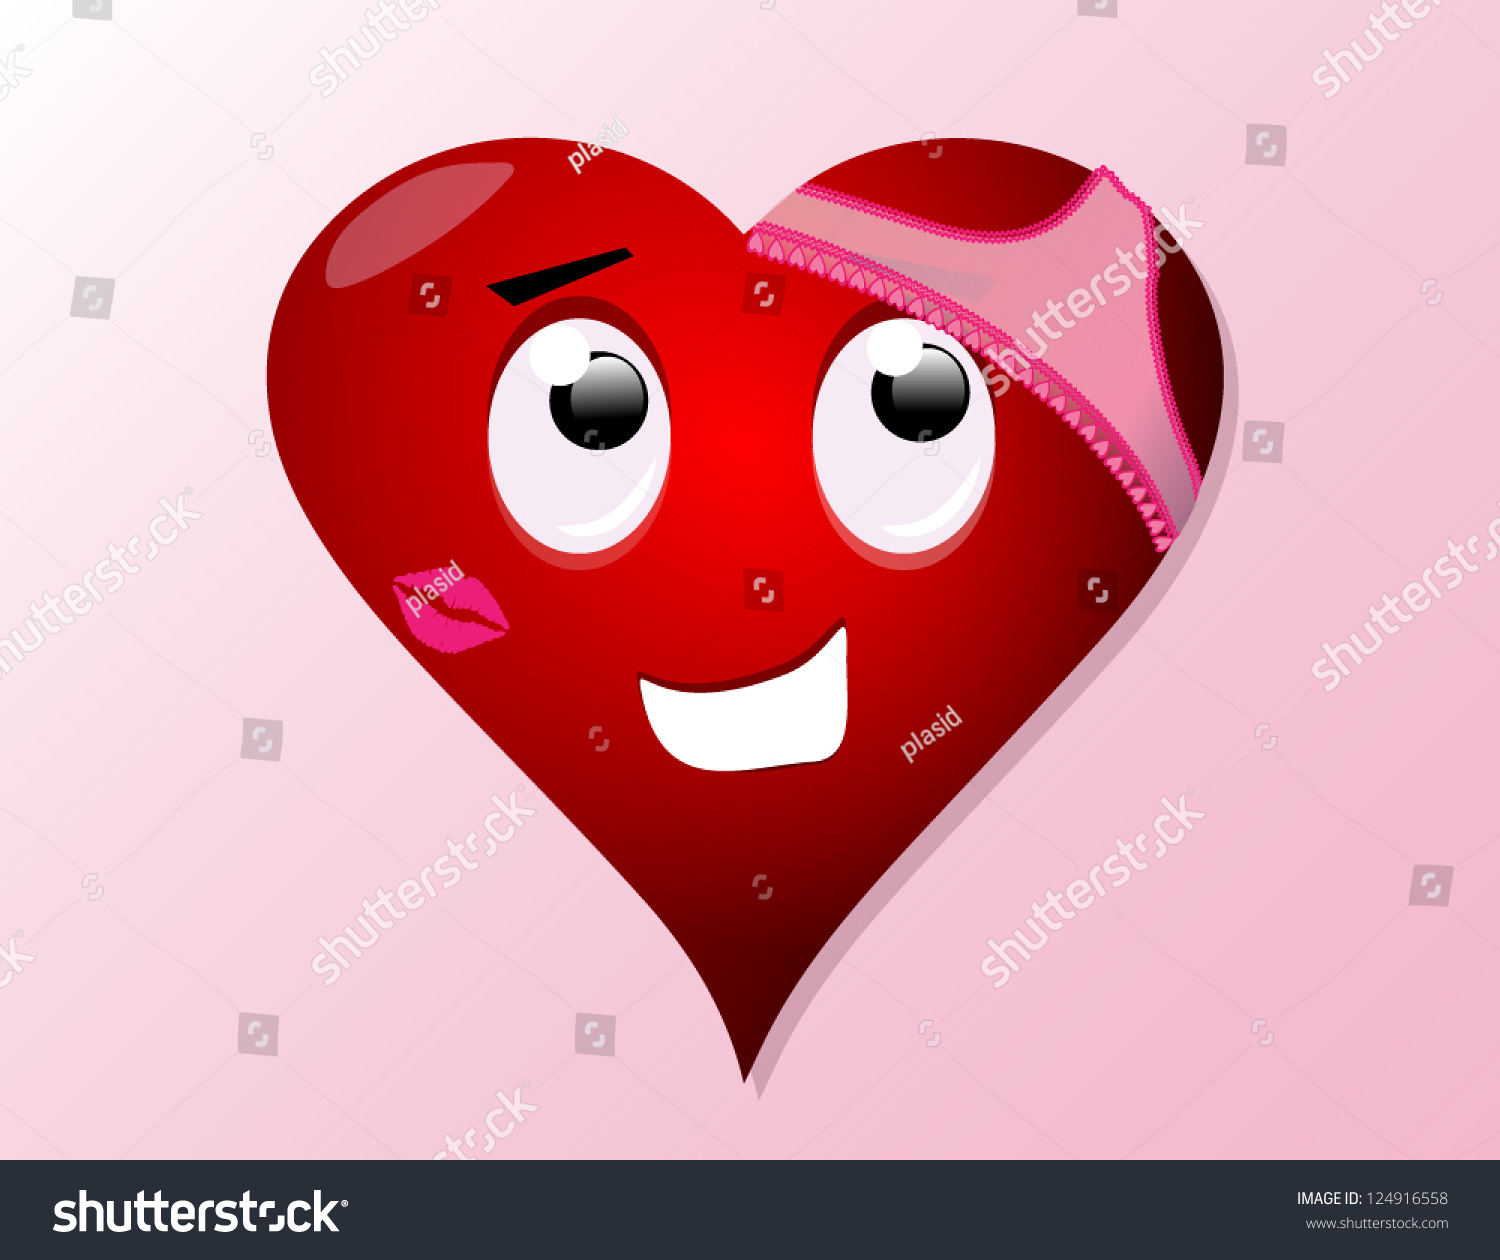 a cartoon vector of a red valentines day heart with womens pink underwear